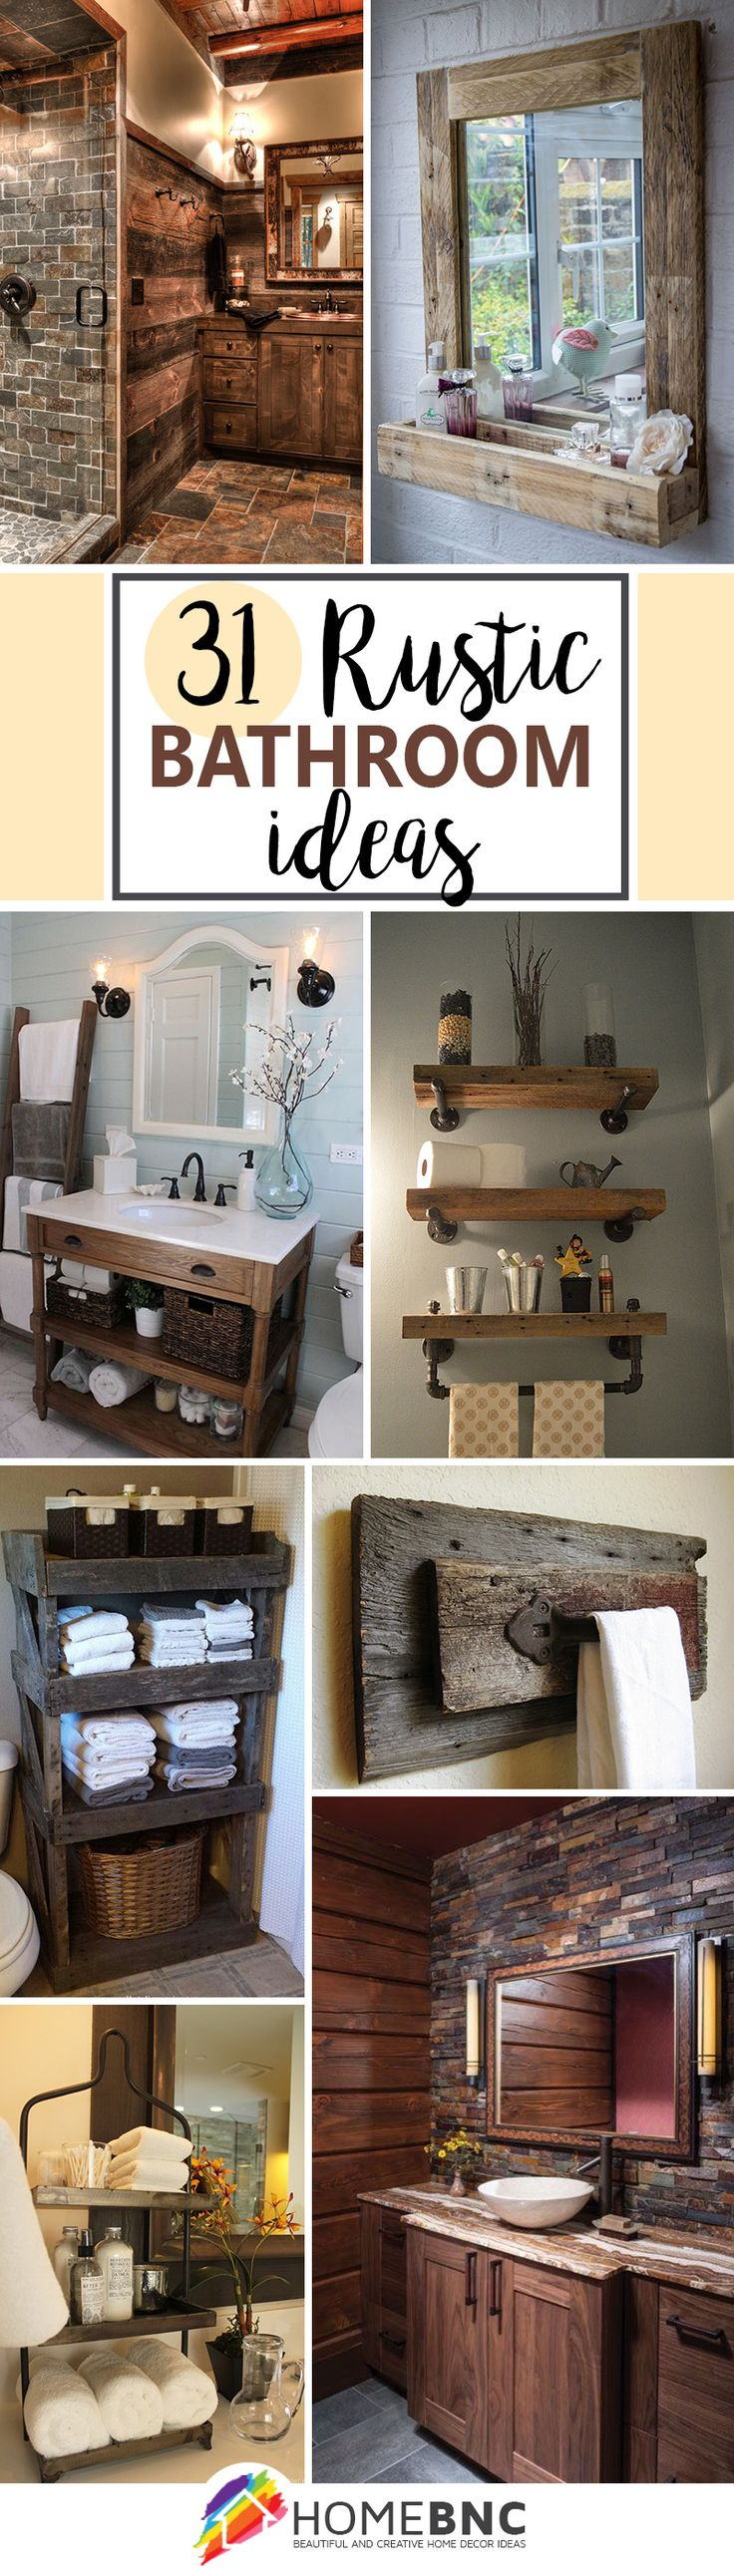 Bathroom Decorating Ideas Rustic 25+ best rustic bathroom decor ideas on pinterest | half bathroom